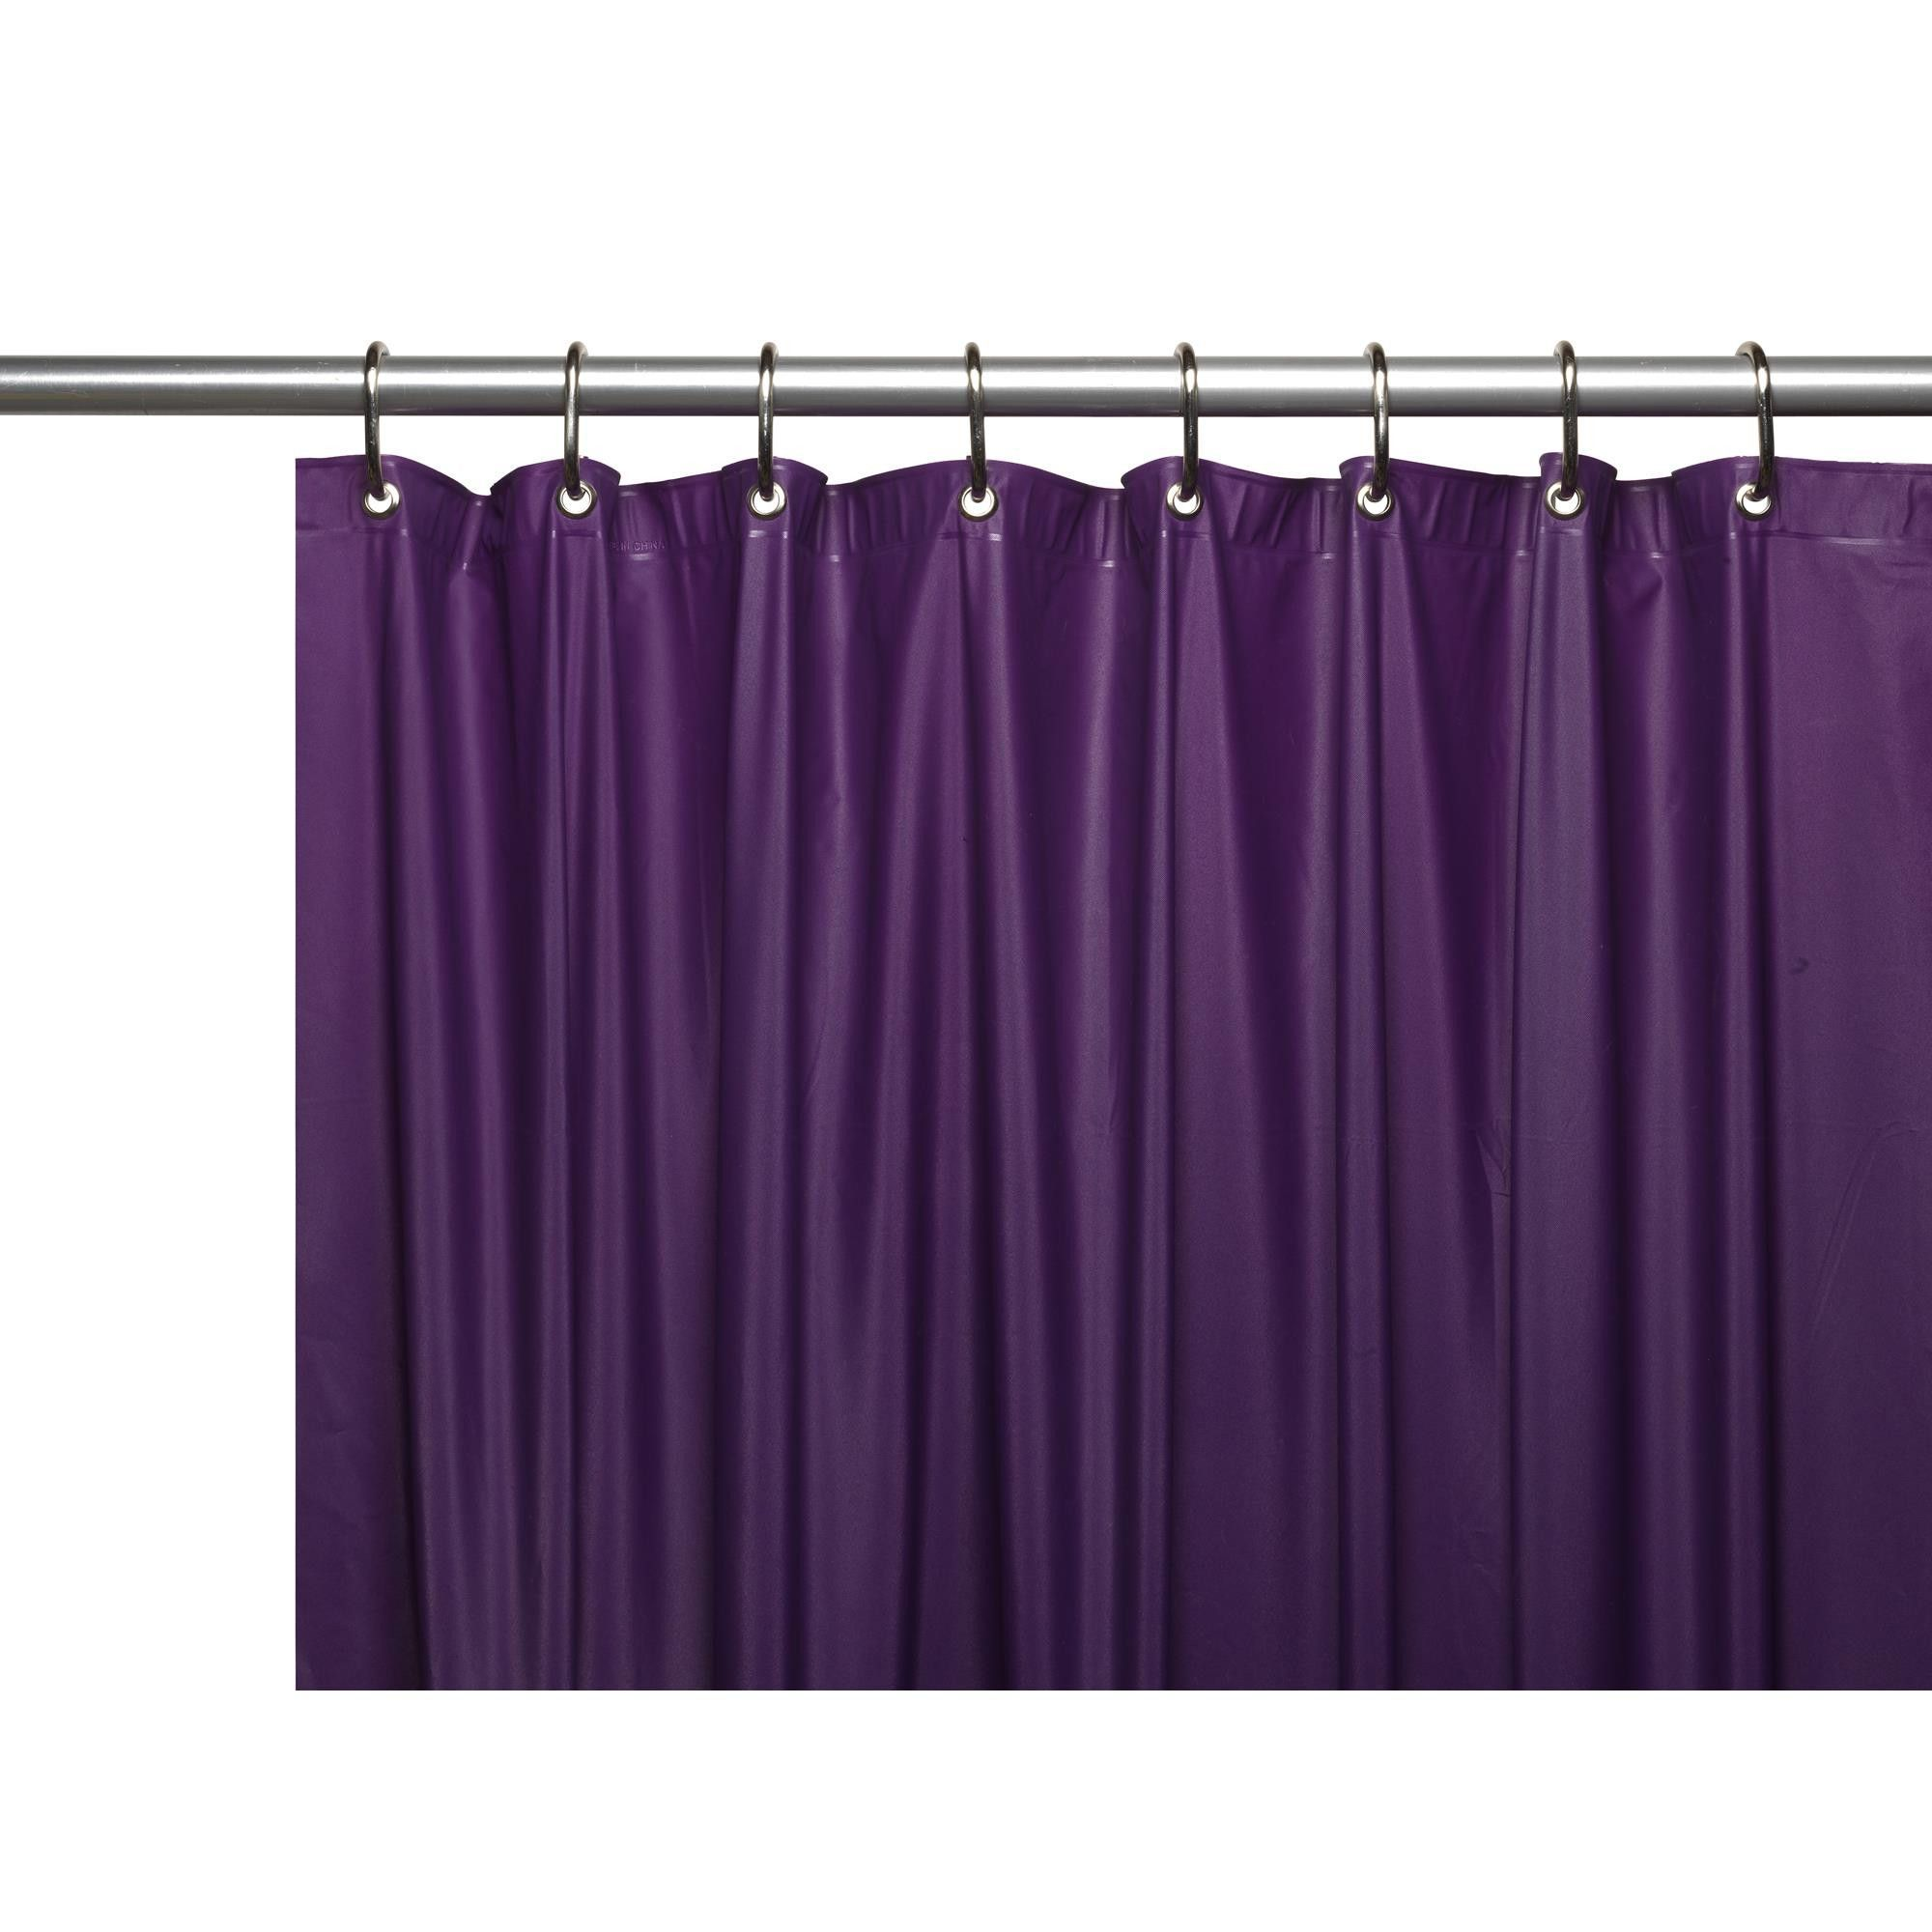 Purple shower curtain liner - Carnation Home Hotel Collection 8 Gauge Vinyl Shower Curtain Liner W Metal Grommets In